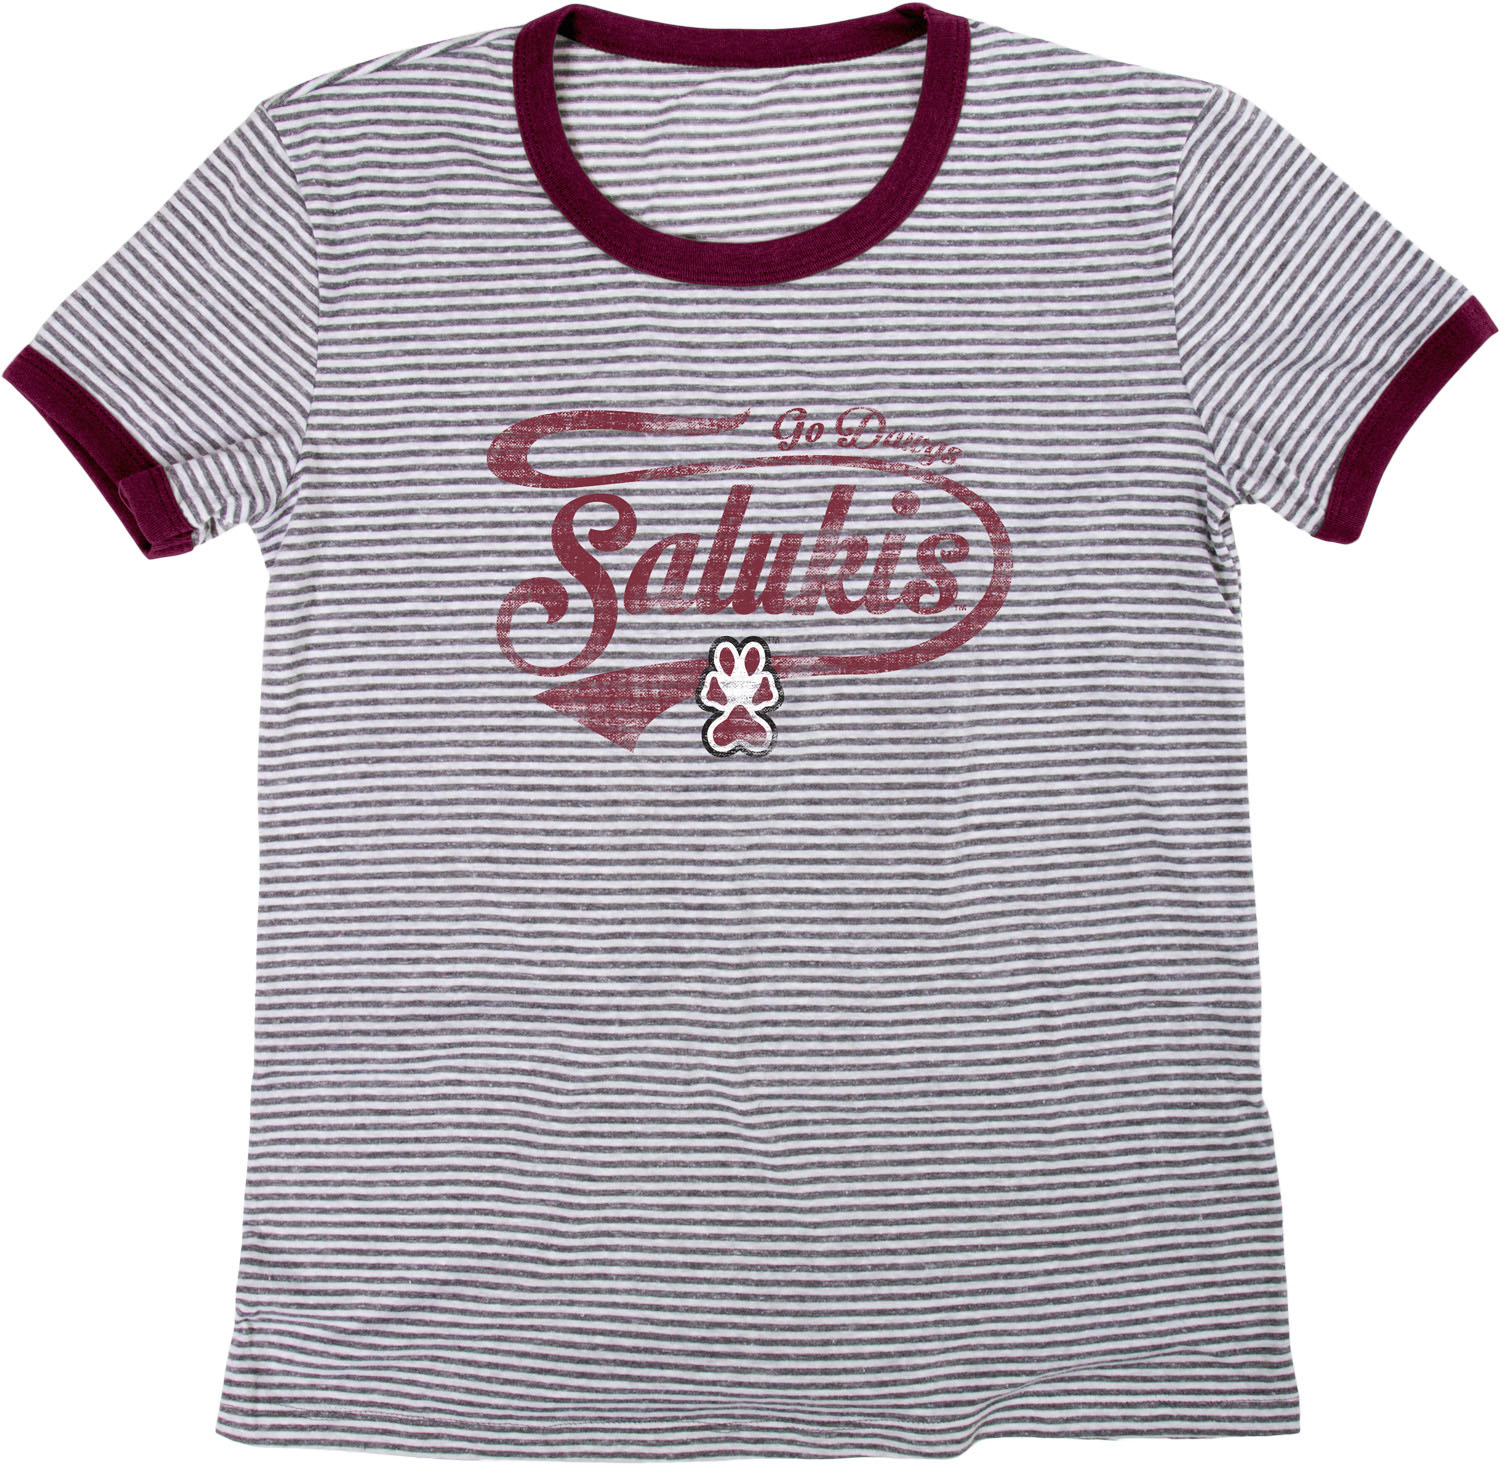 Image for the BLUE 84® SALUKIS PAW PRINT LADIES TRI BLEND RETRO STRIPE RINGER product